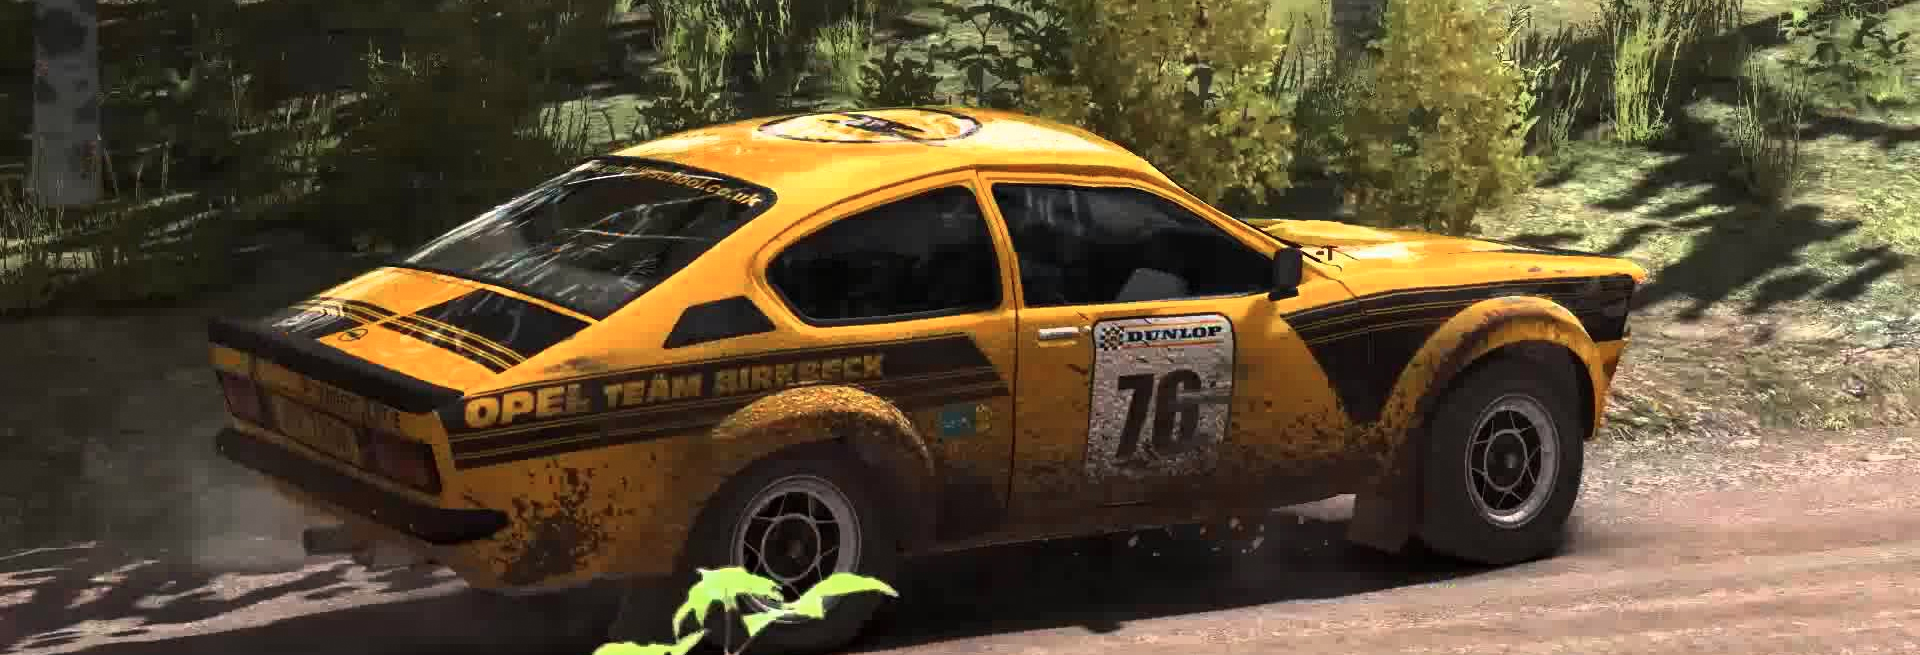 DiRT Rallye – Simrally_PS4-Liga 5/6